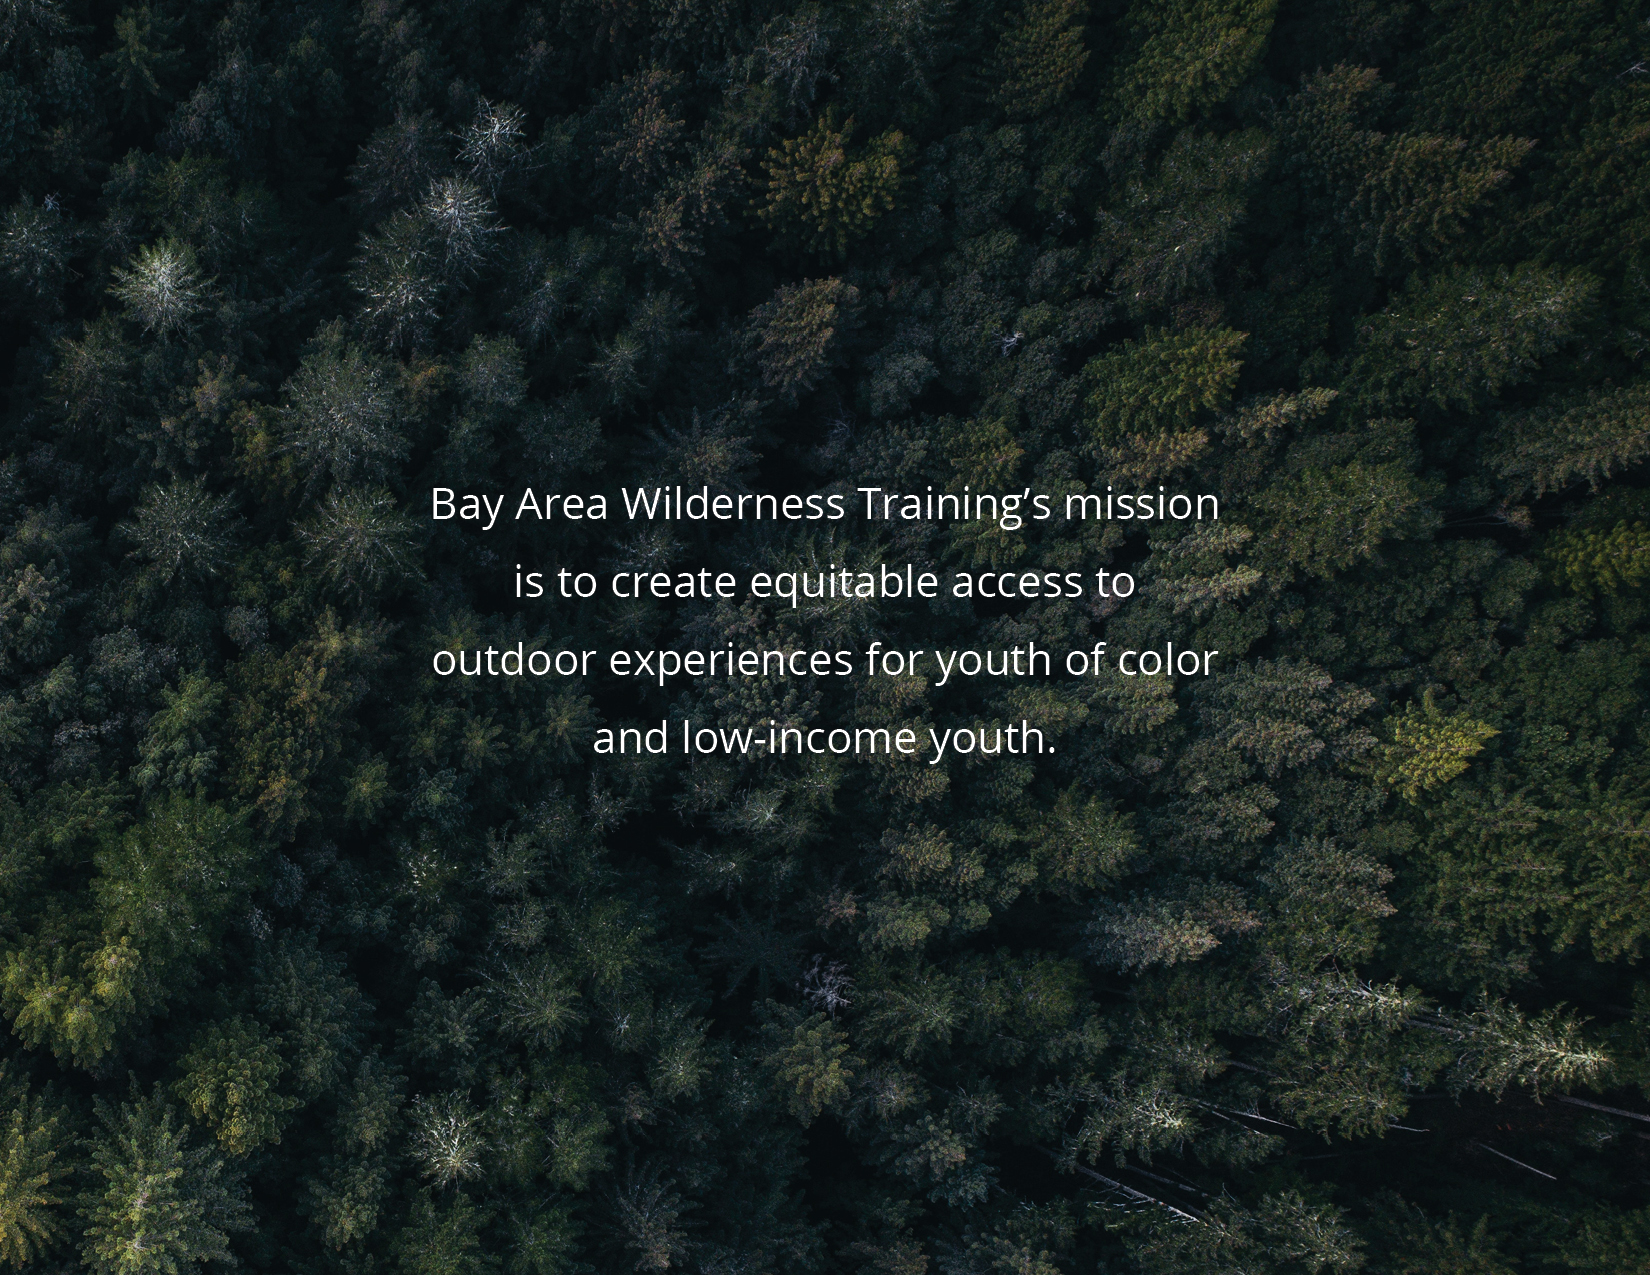 Strategic Plan | Bay Area Wilderness Training (BAWT)